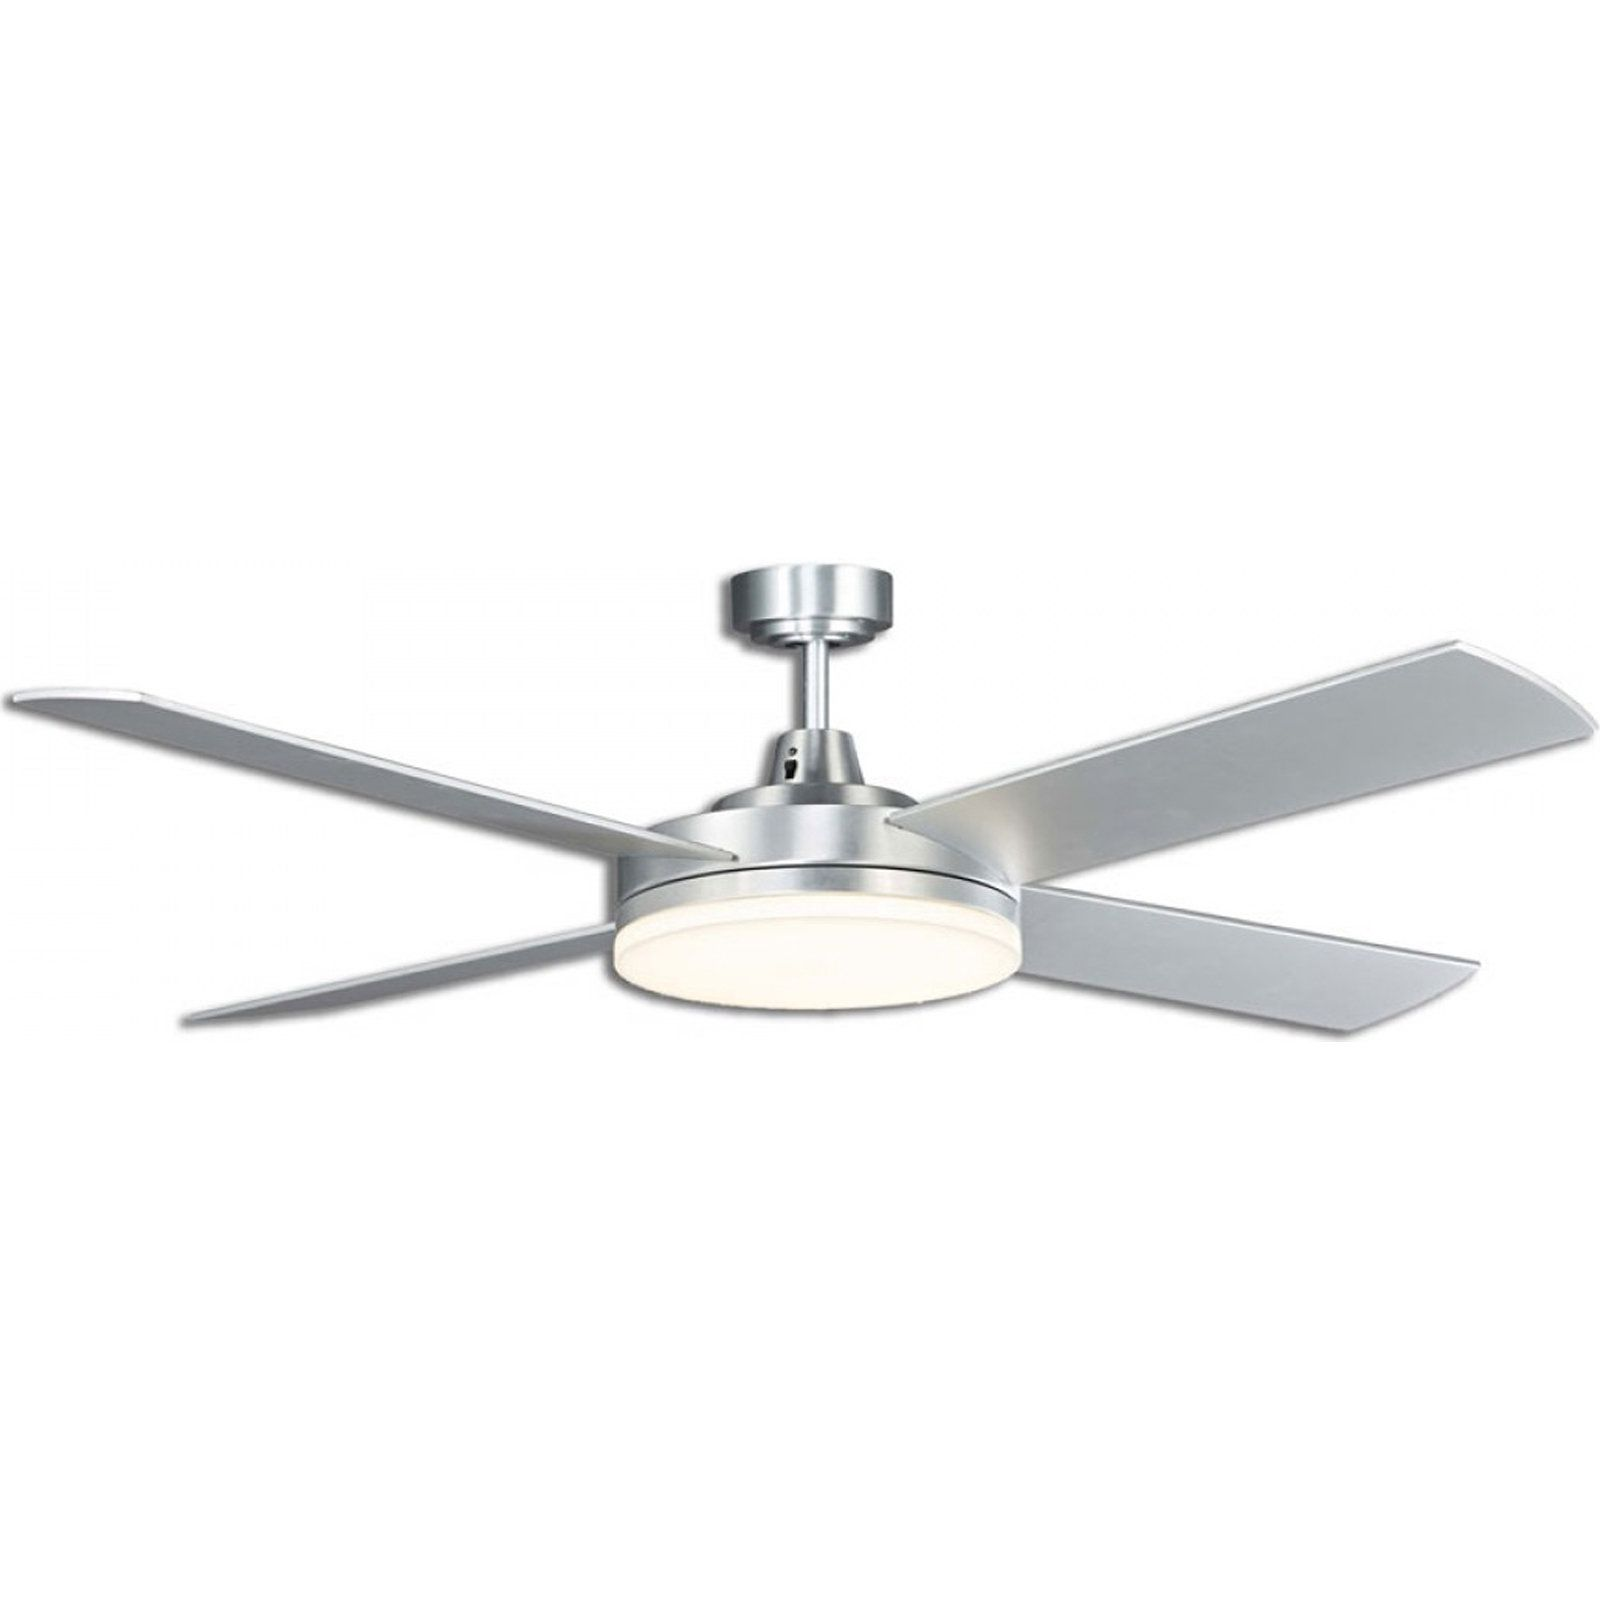 Dimmable Ceiling Fan Light Kit o